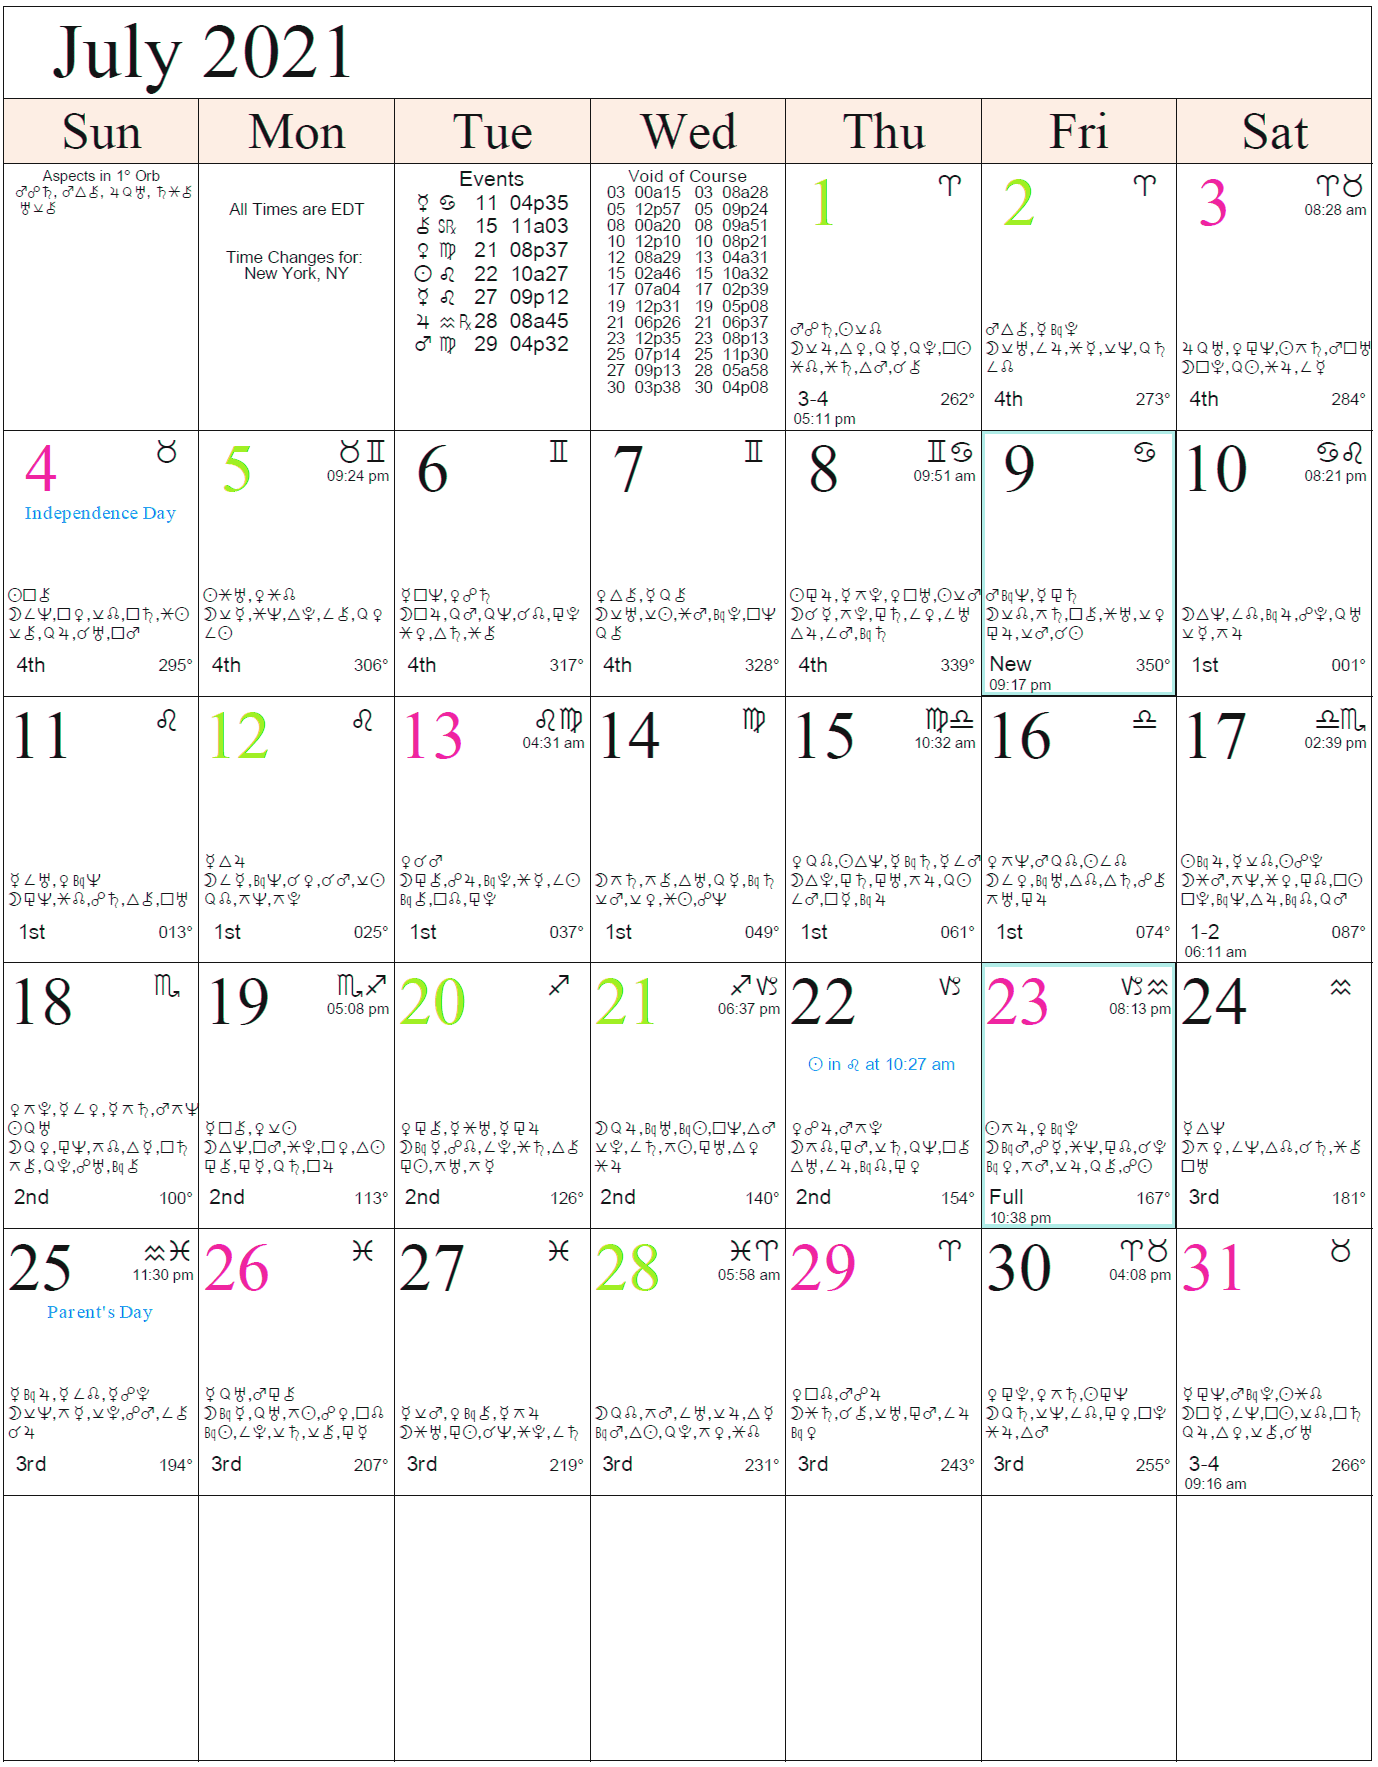 Astrological calendar with aspects for July 2021.